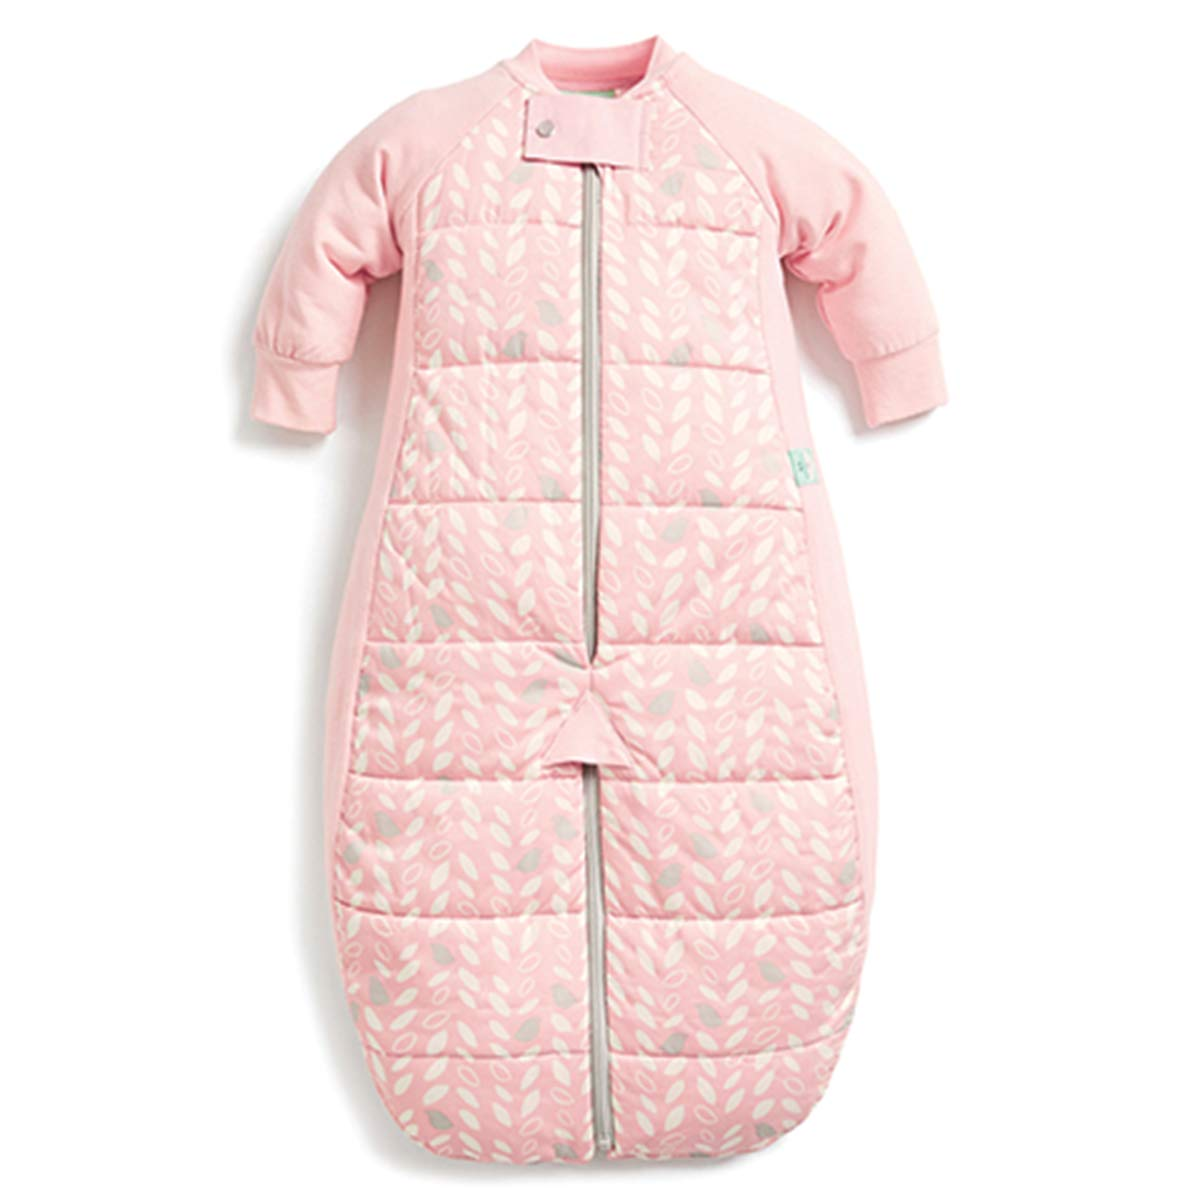 ergoPouch 3.5 TOG Sleep Suit Bag 100% organic cotton filling with cotton sleeves and fold over mitts. 2 in 1 wearable blanket sleeping bag converts to sleep suit with legs (Spring Leaves, 2-12 months)